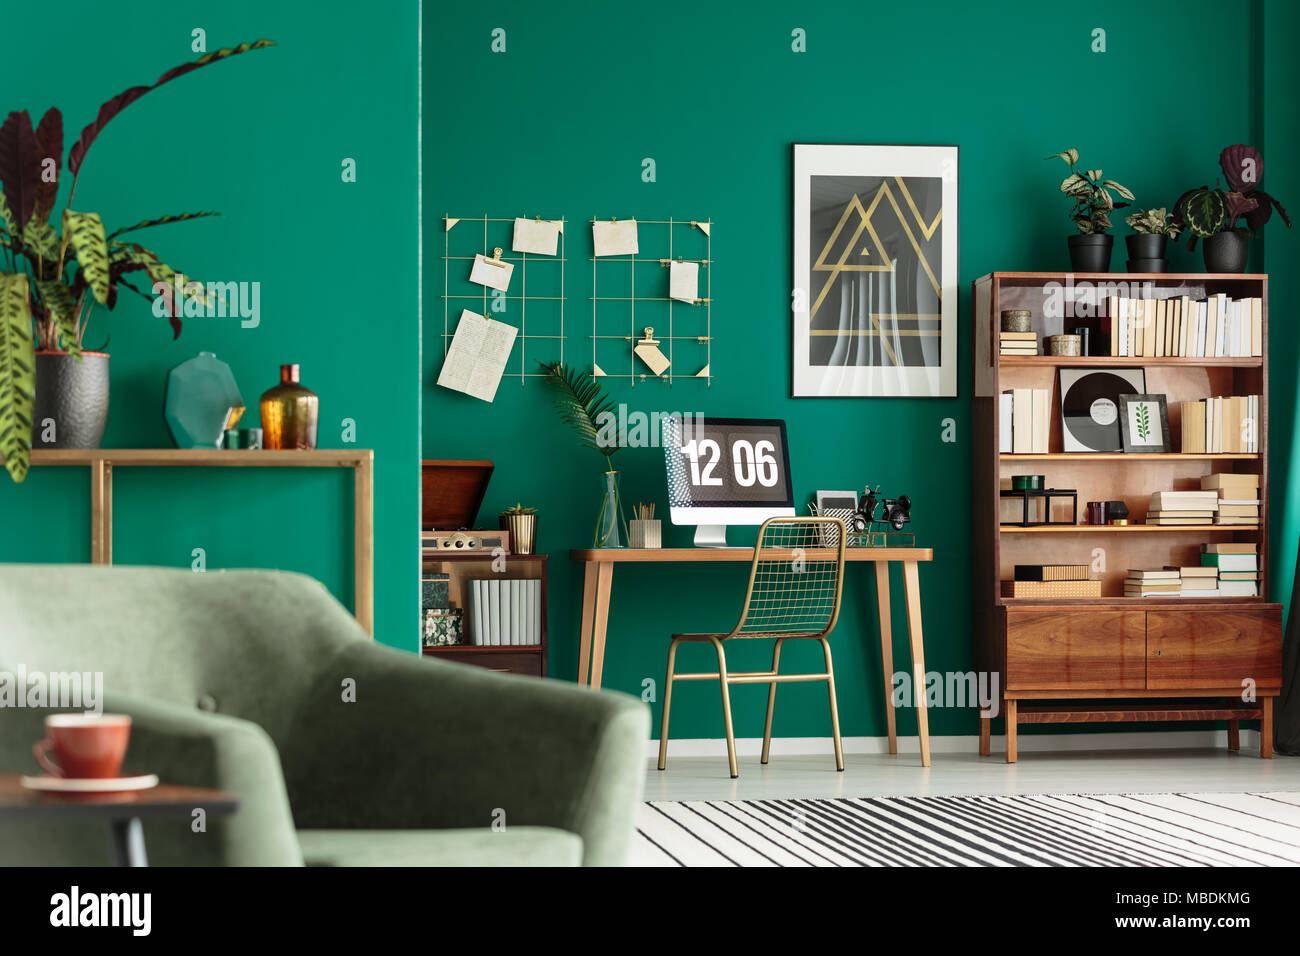 Green Living Green Living Room Interior With Books On Wooden Cupboard And